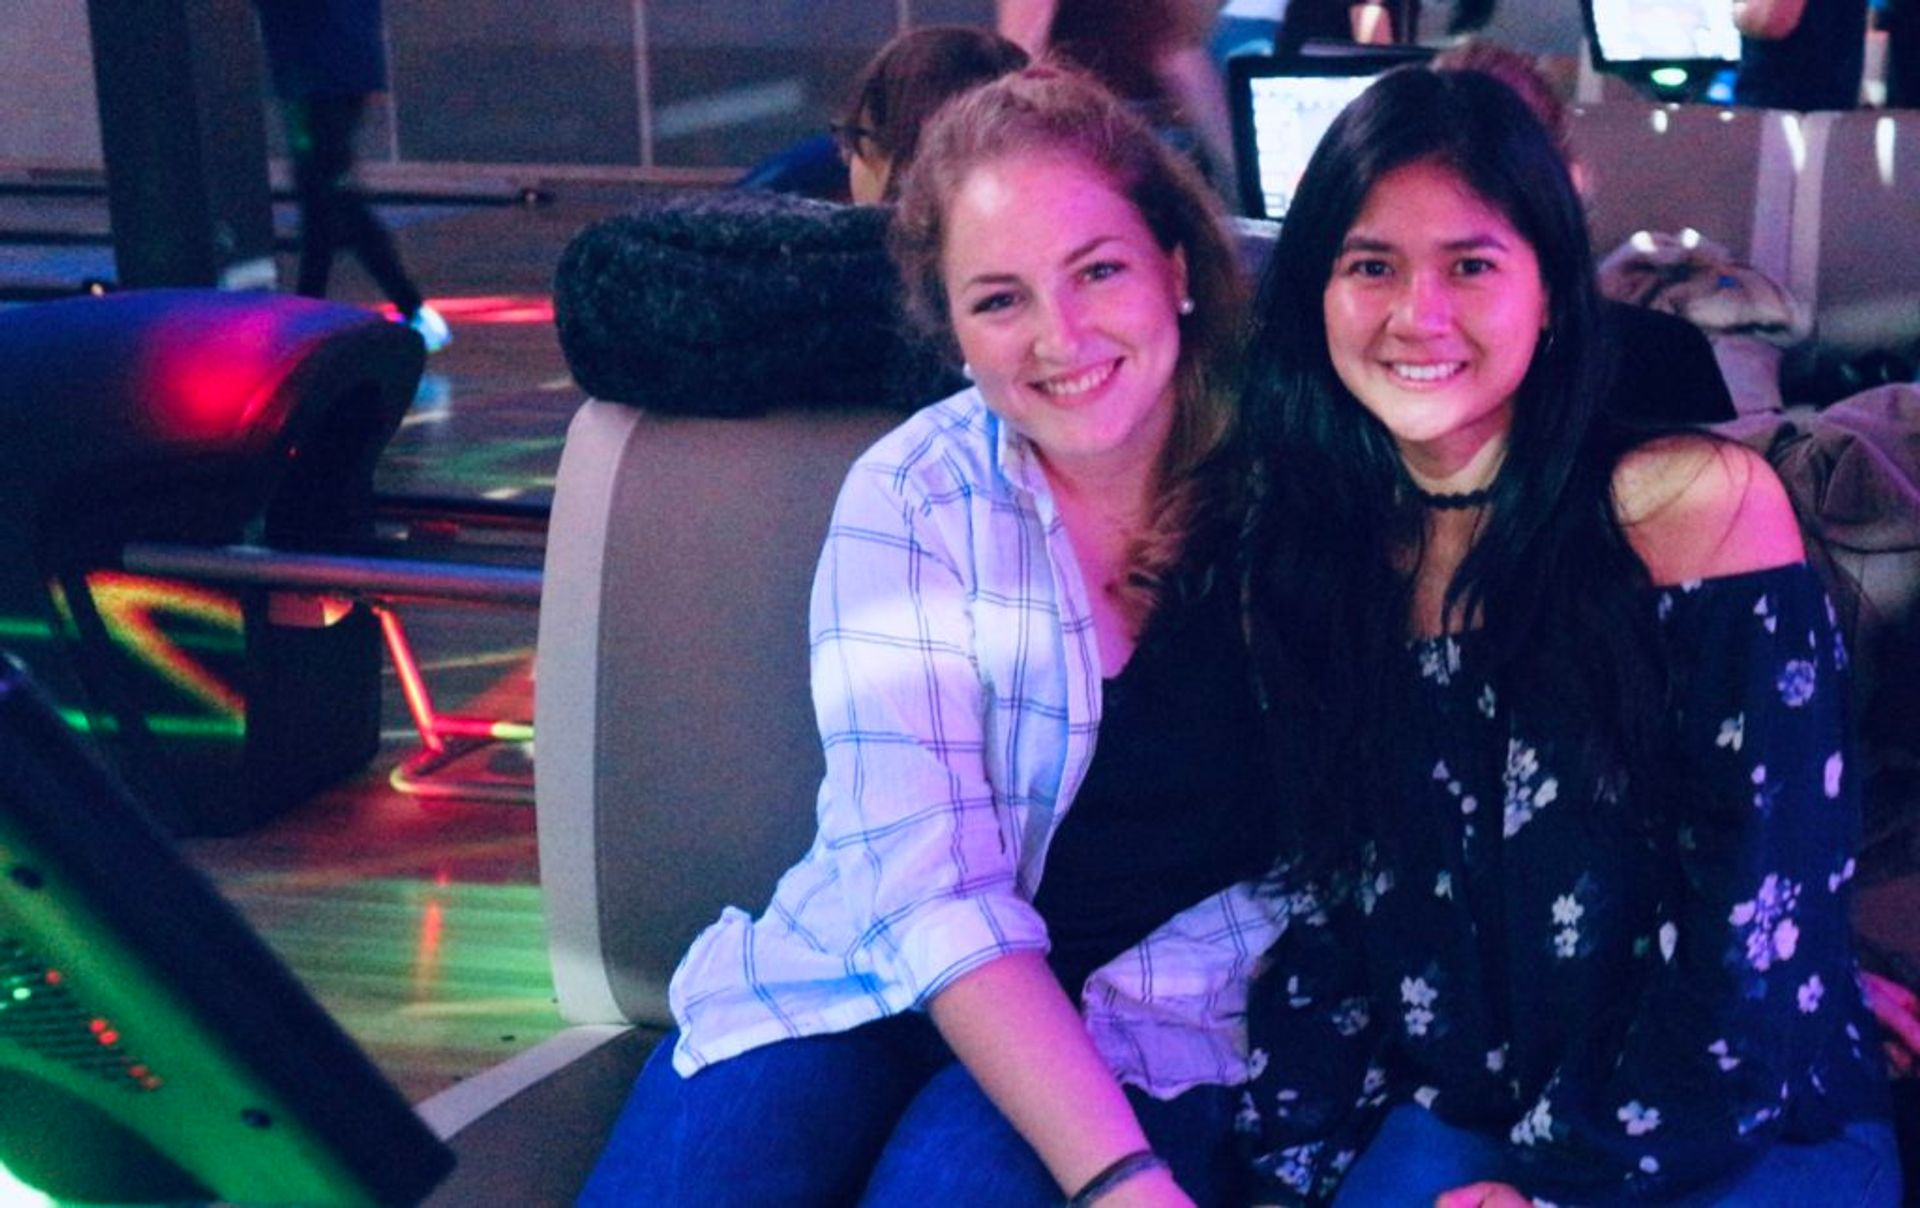 Two students sit together in a bowling hall.